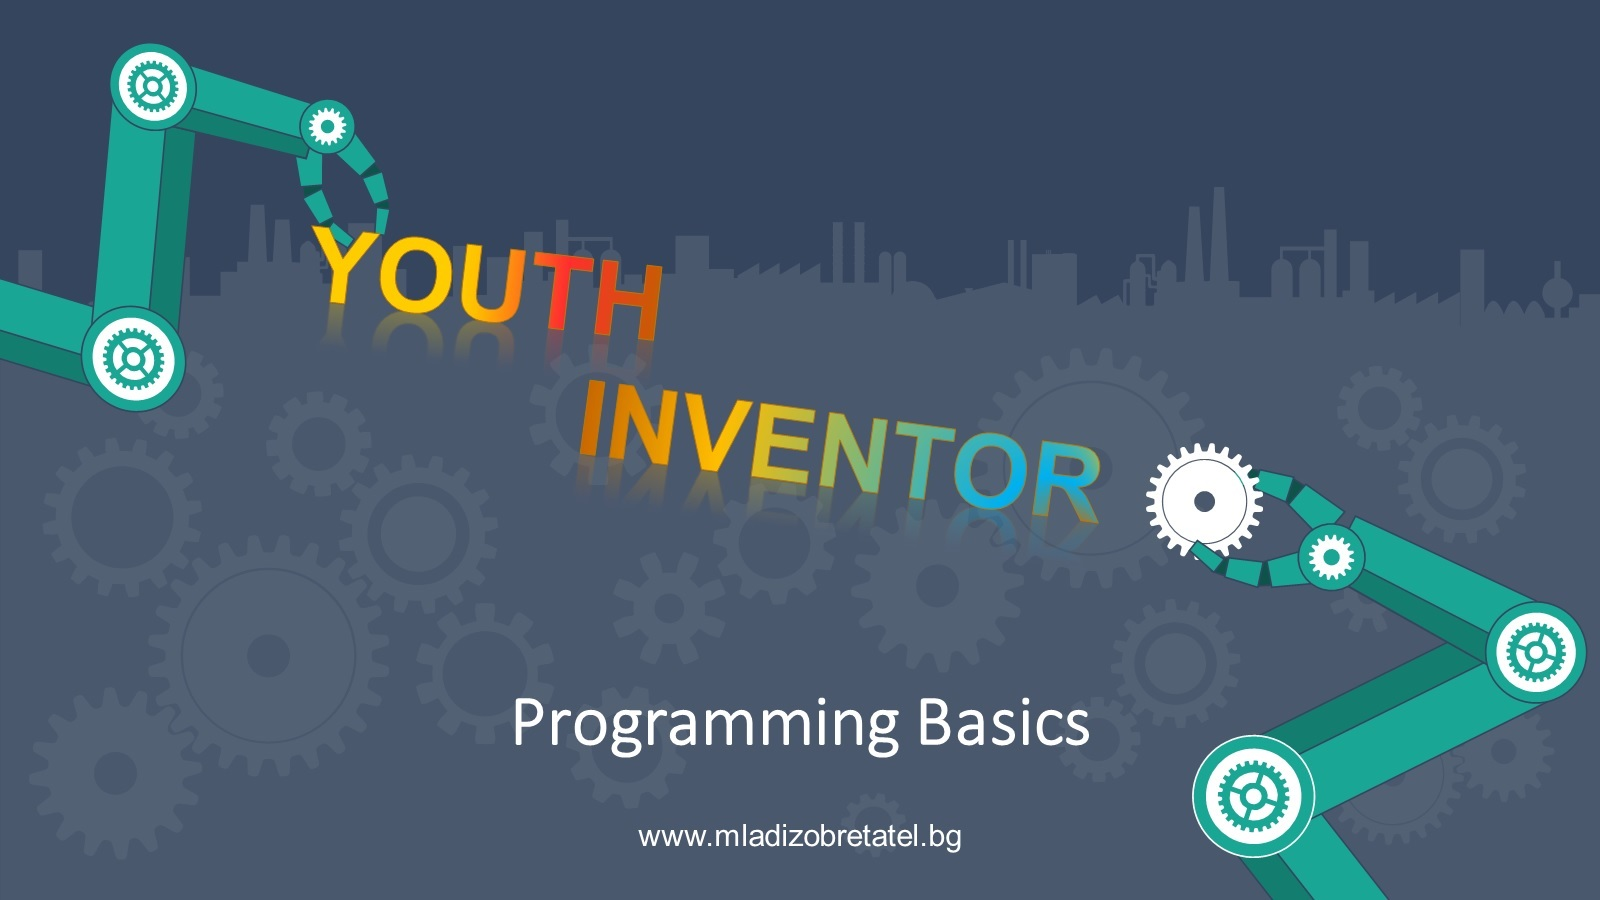 Programming_Basics_Youth_Inventor